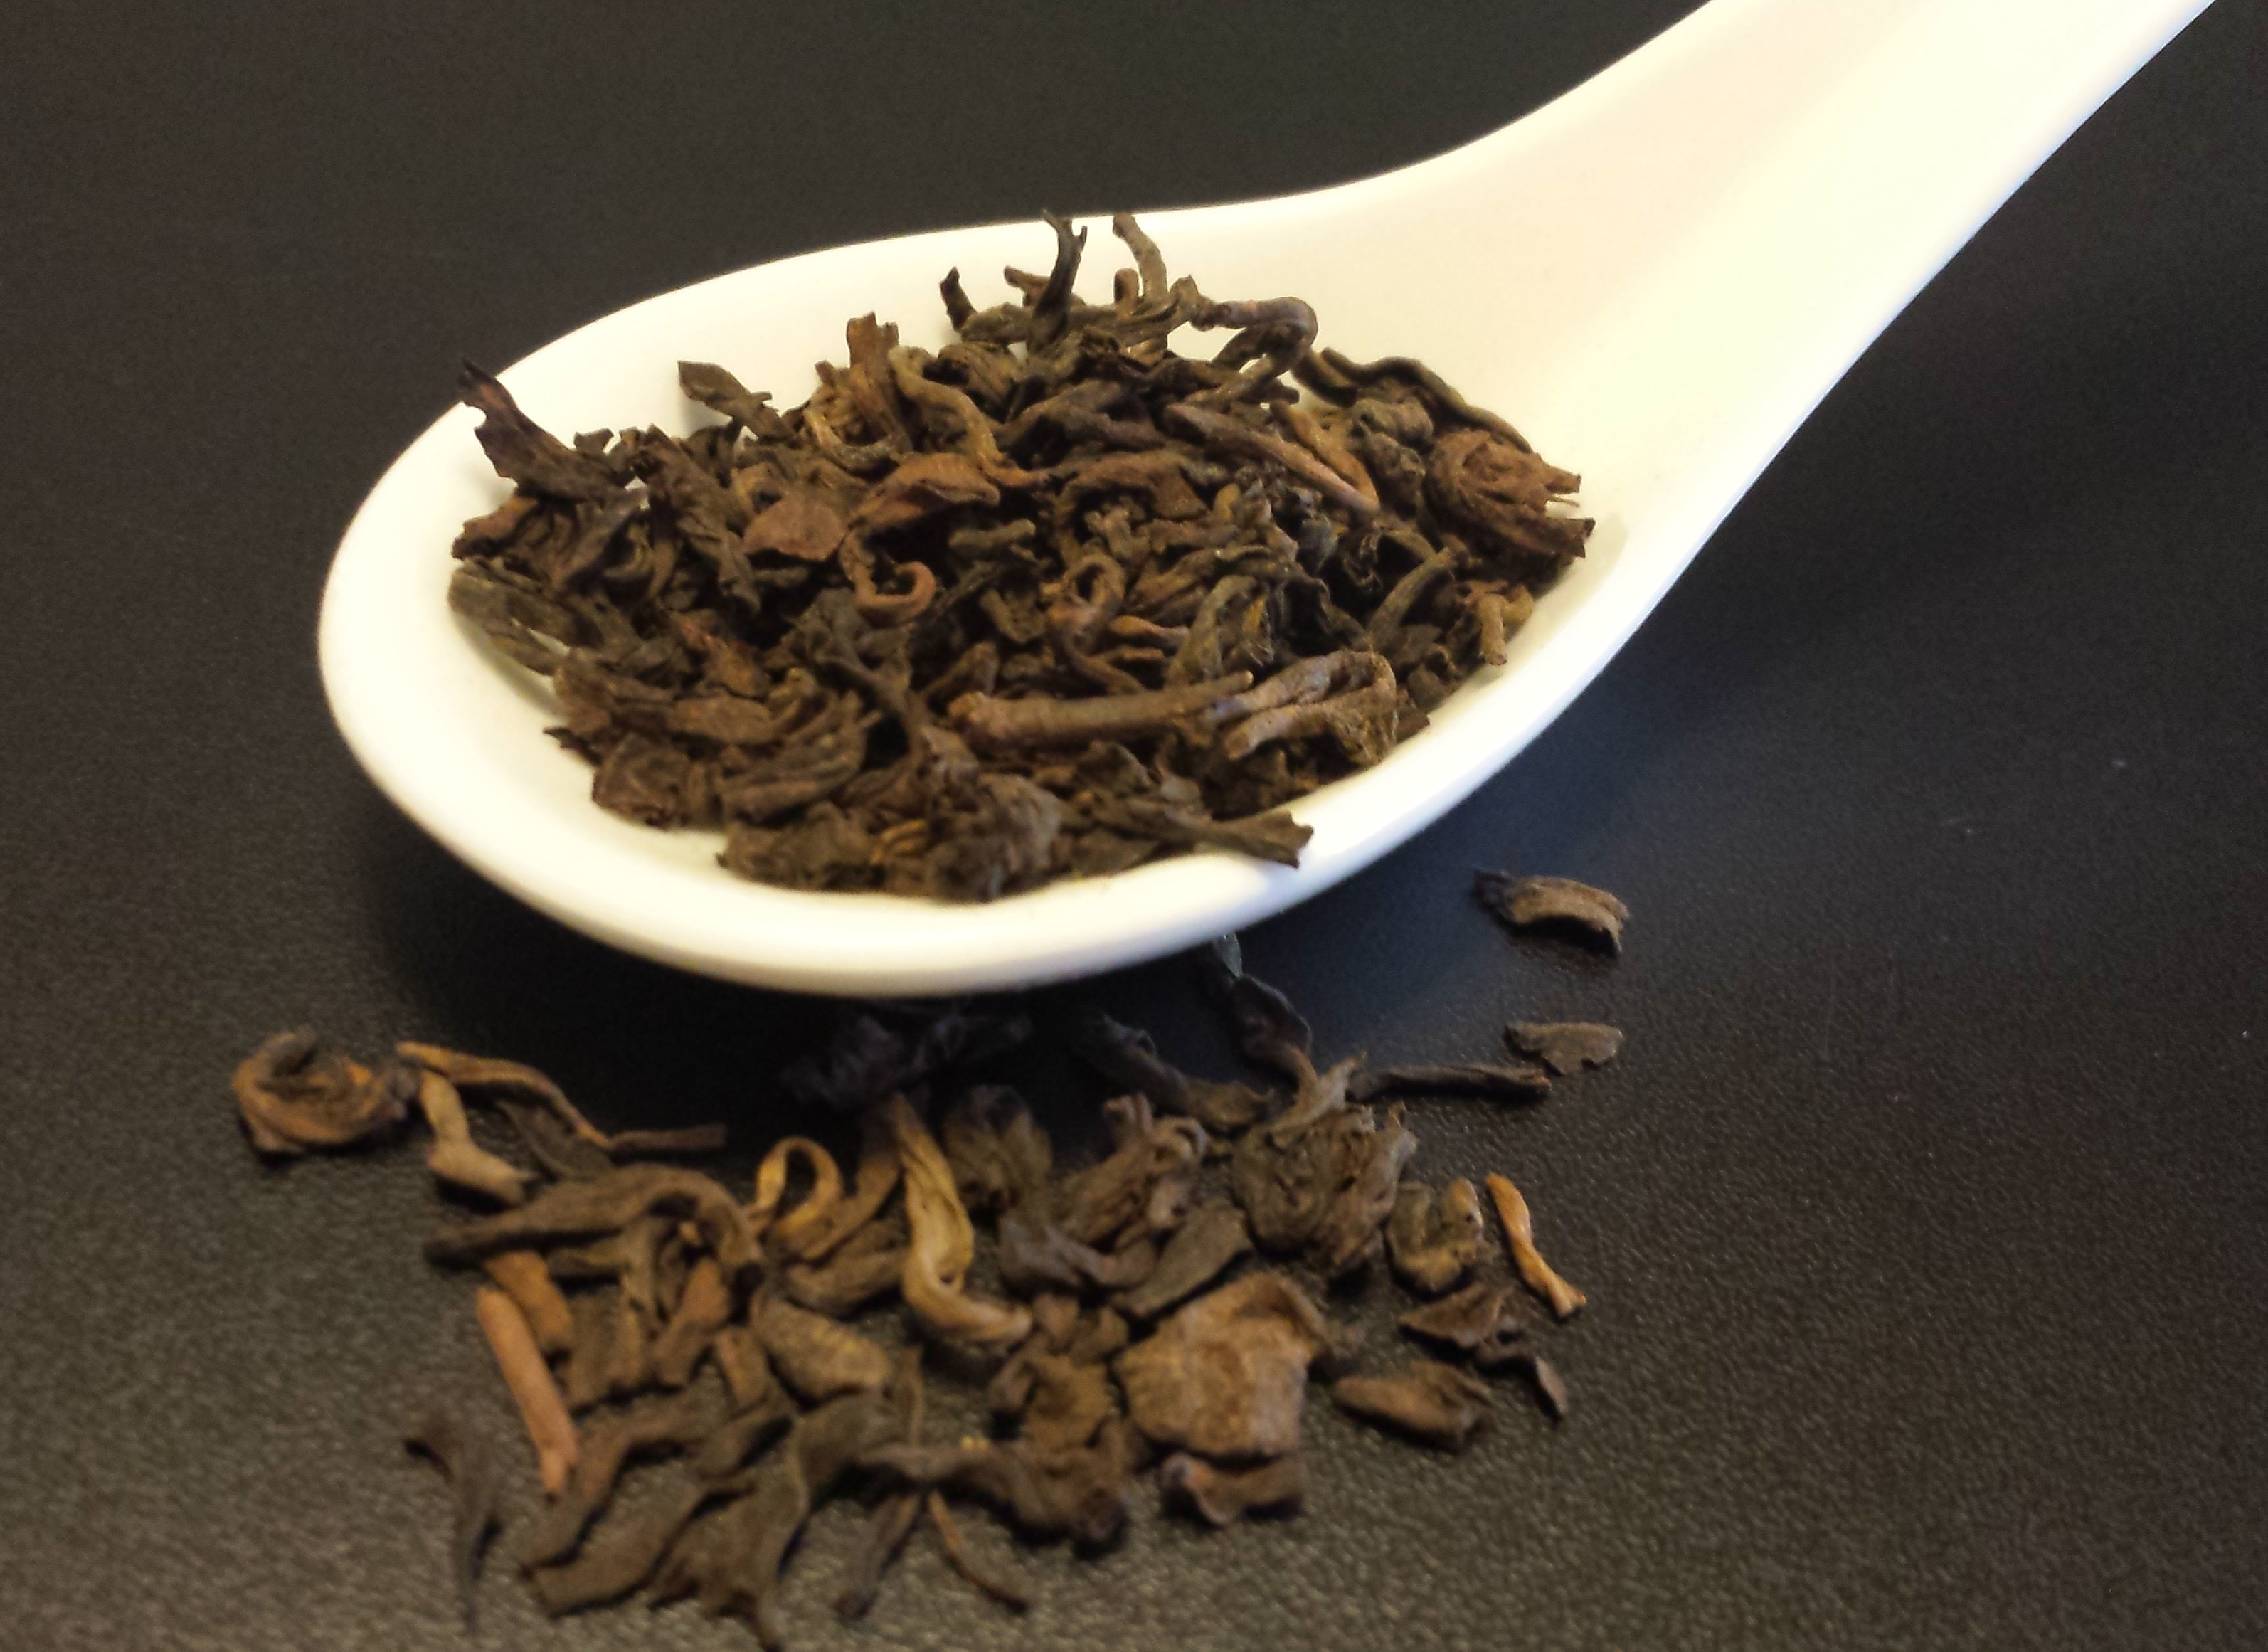 Golden Tip Pu-erh, pu-erh, black tea, aged tea, Chinese tea